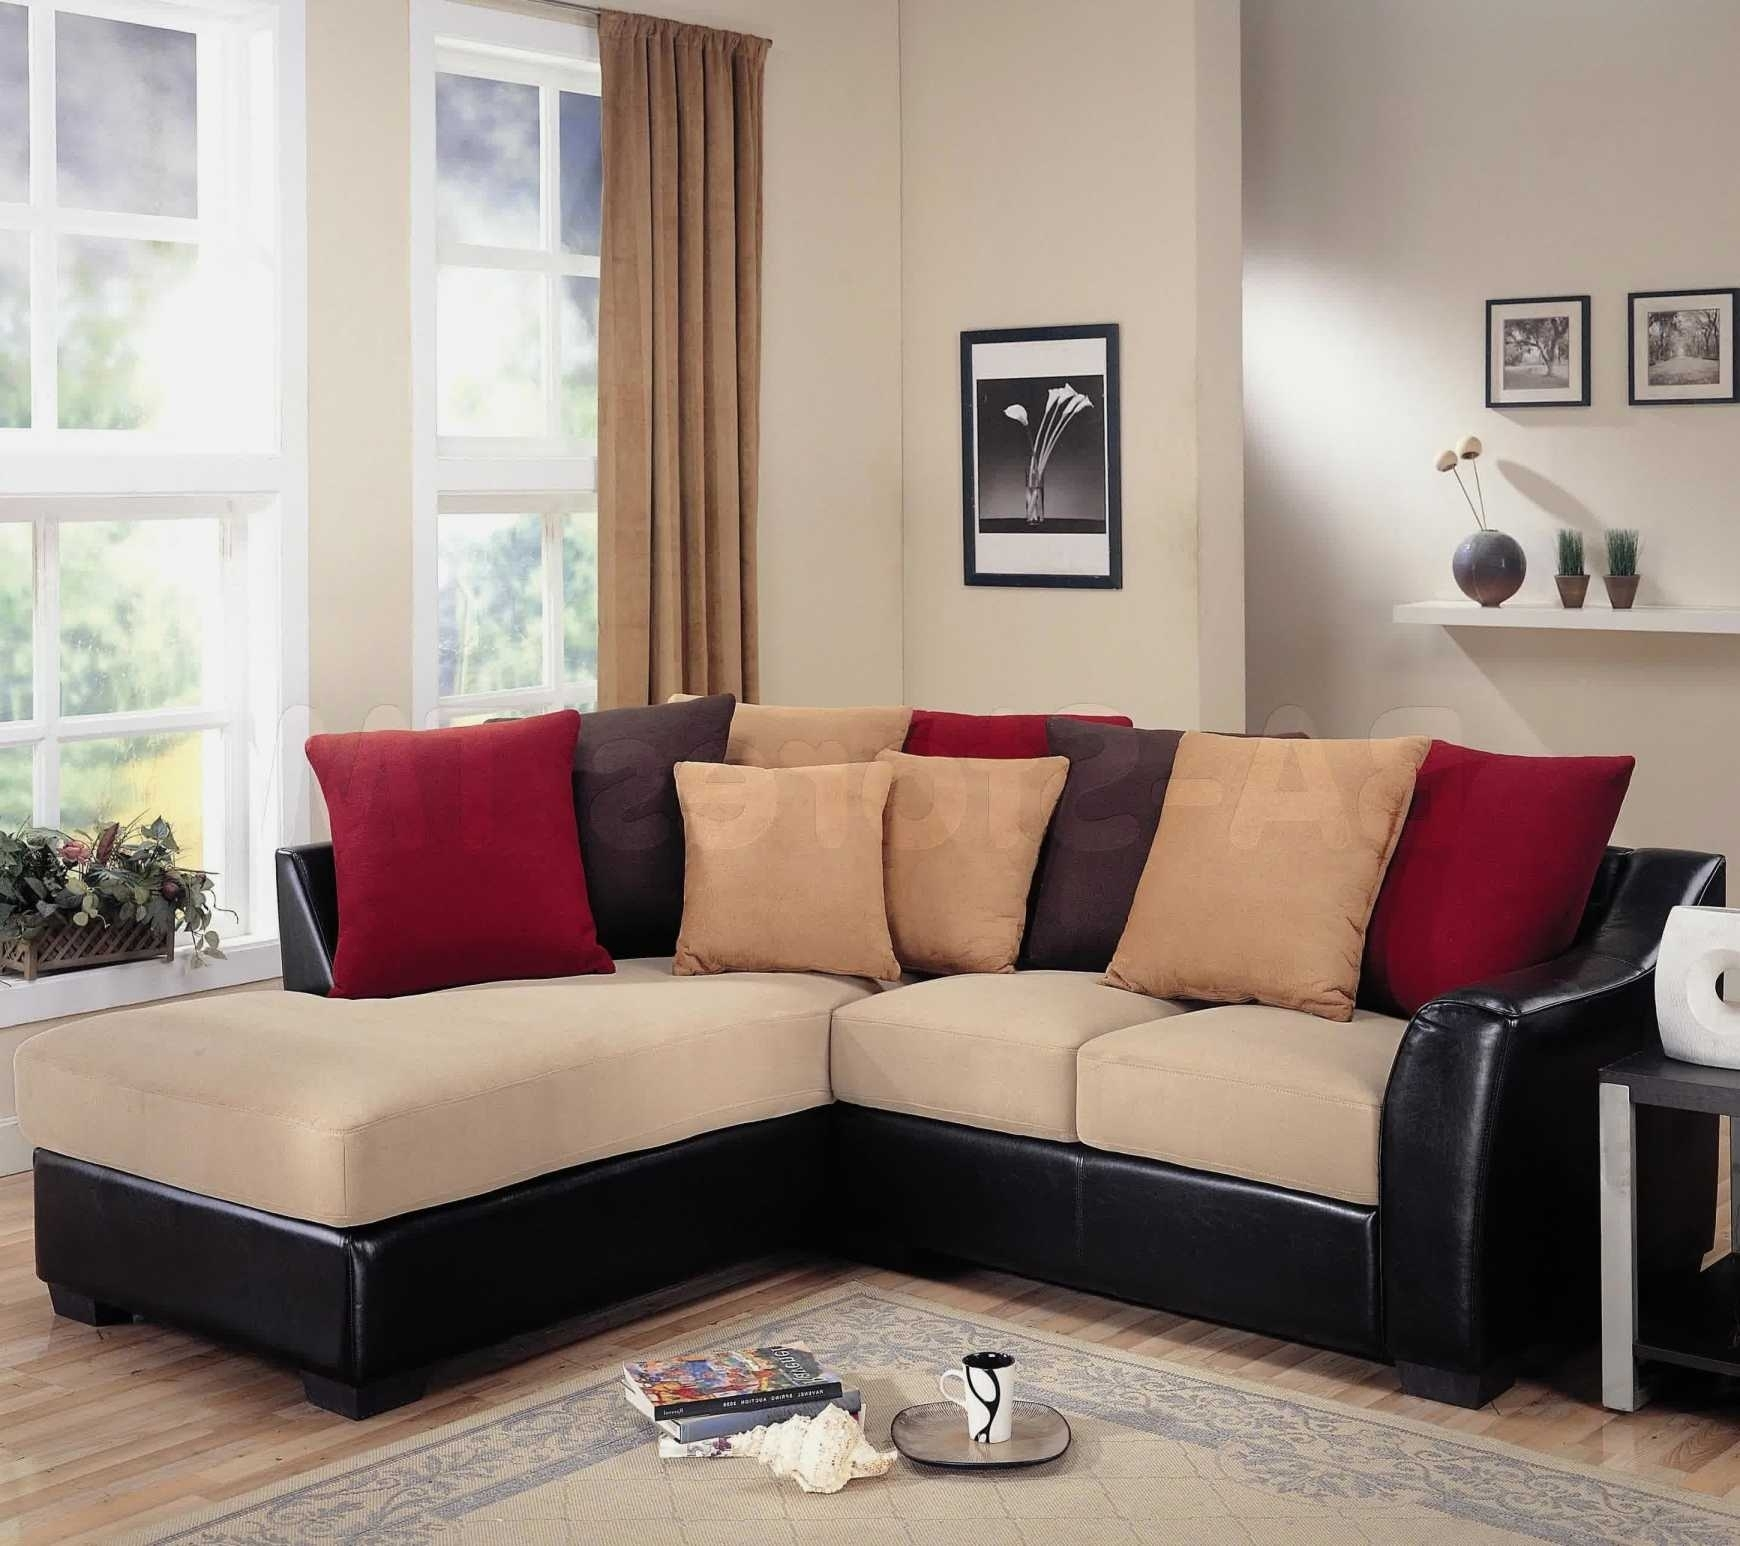 Loveseat : Furniture: Big Couches Inspirational Futon Big Lots Within Lubbock Sectional Sofas (Image 9 of 10)